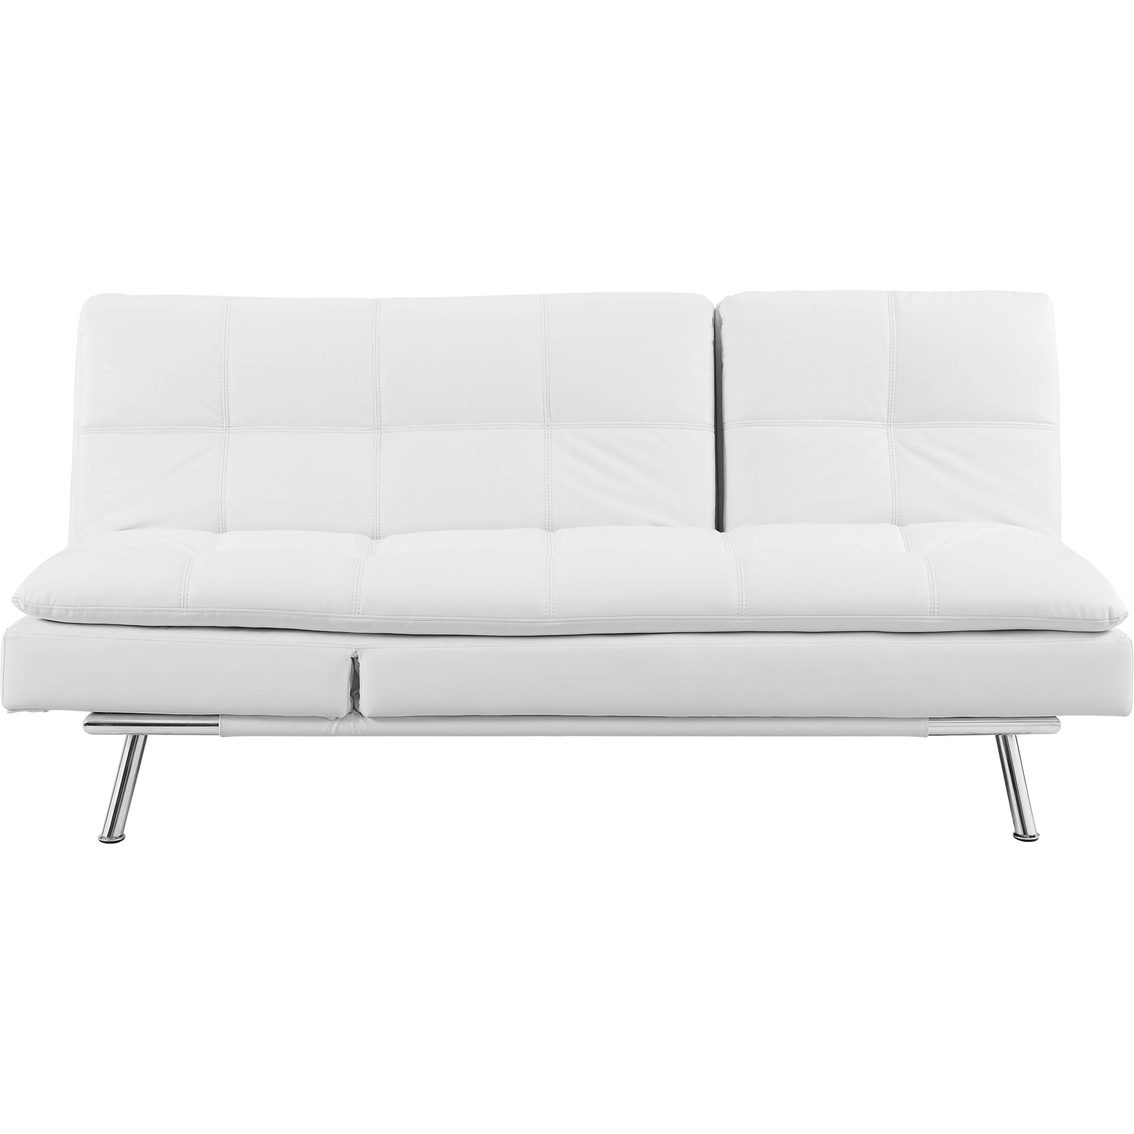 Sealy Leather Sofa: Serta Palermo Convertible White Leather Sleeper Chaise